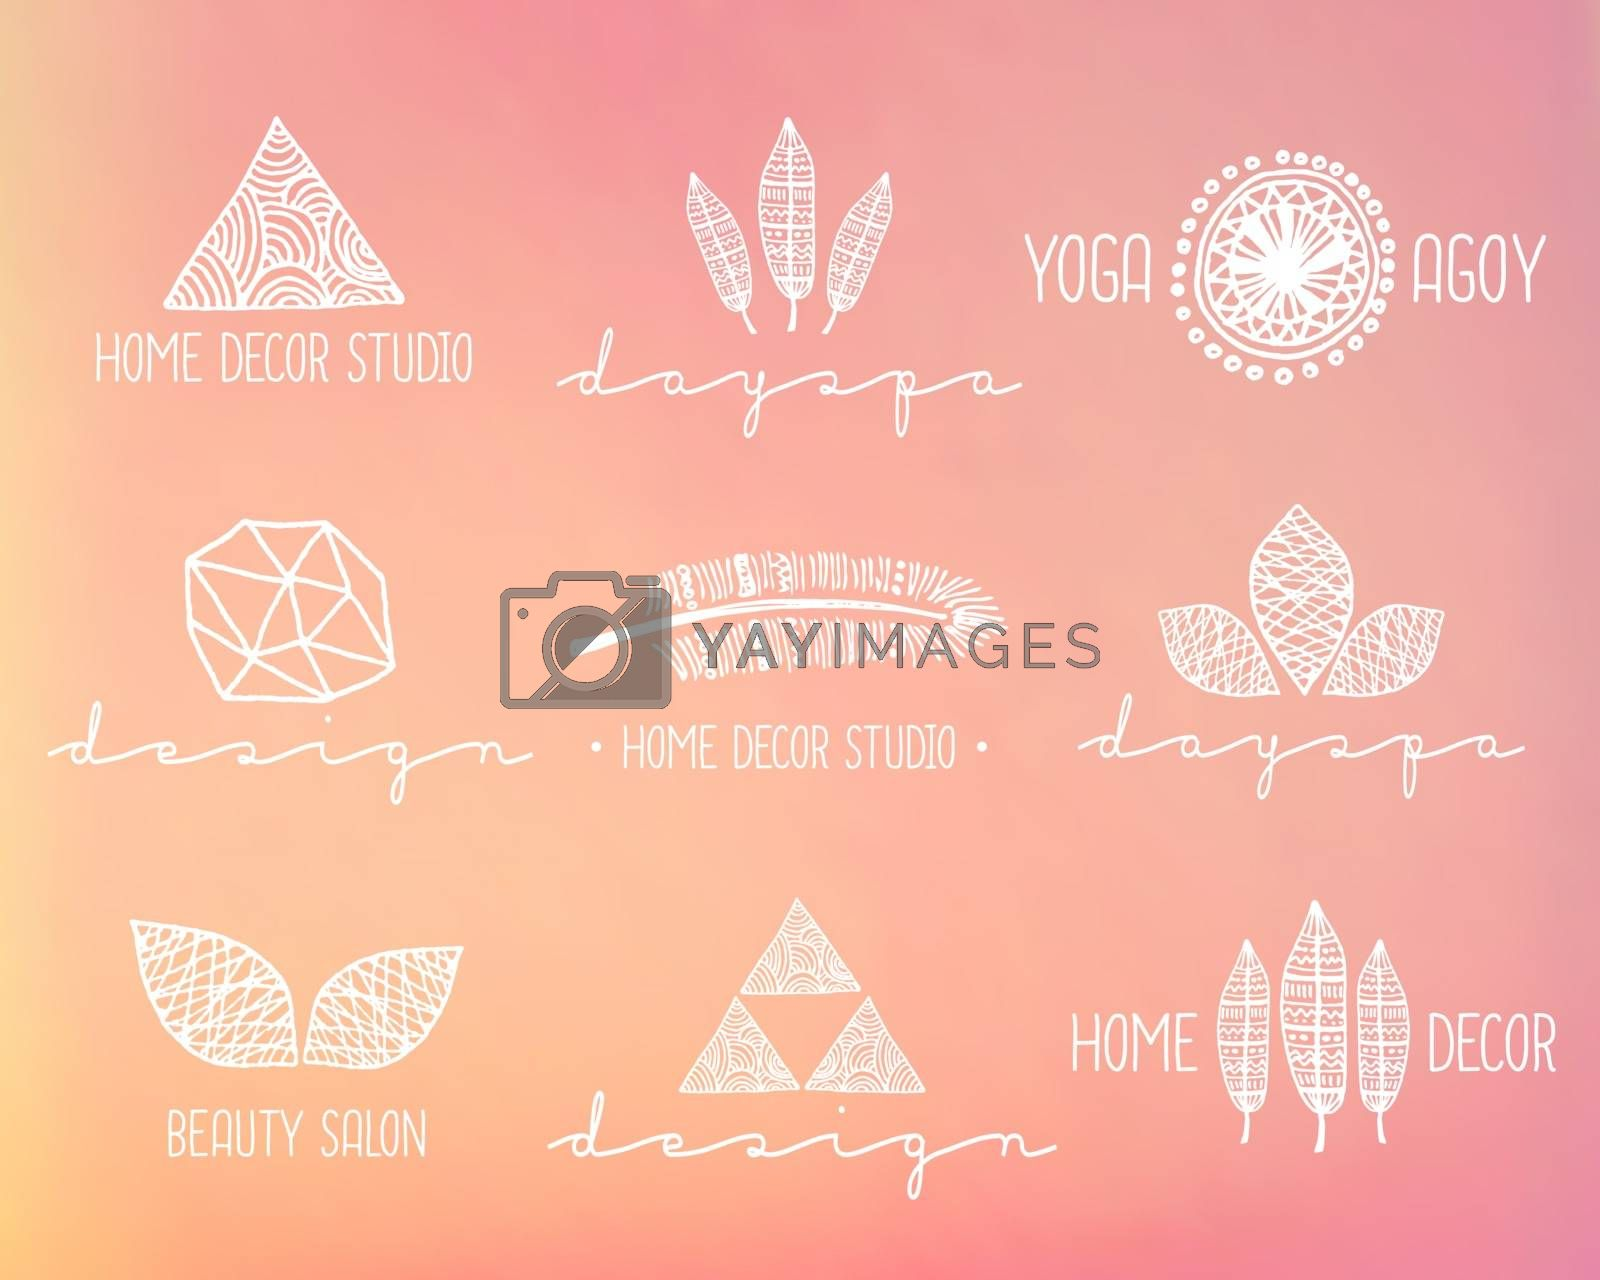 A set of hand drawn vintage style design elements. Modern and elegant premade typographic logo designs on a blurred background. EPS 10 file, gradient mesh used.